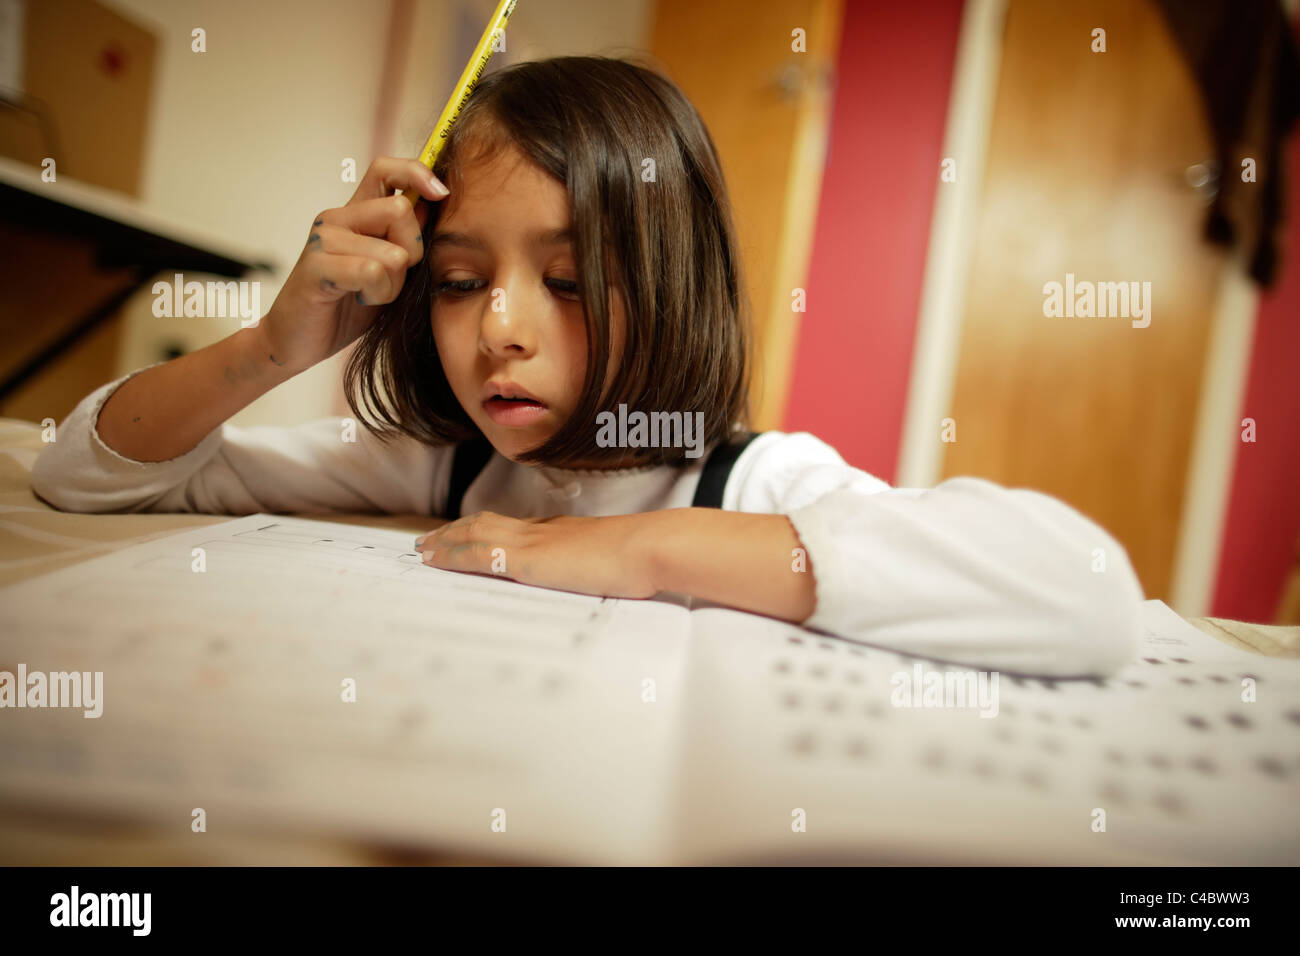 Girl does her music theory homework. - Stock Image